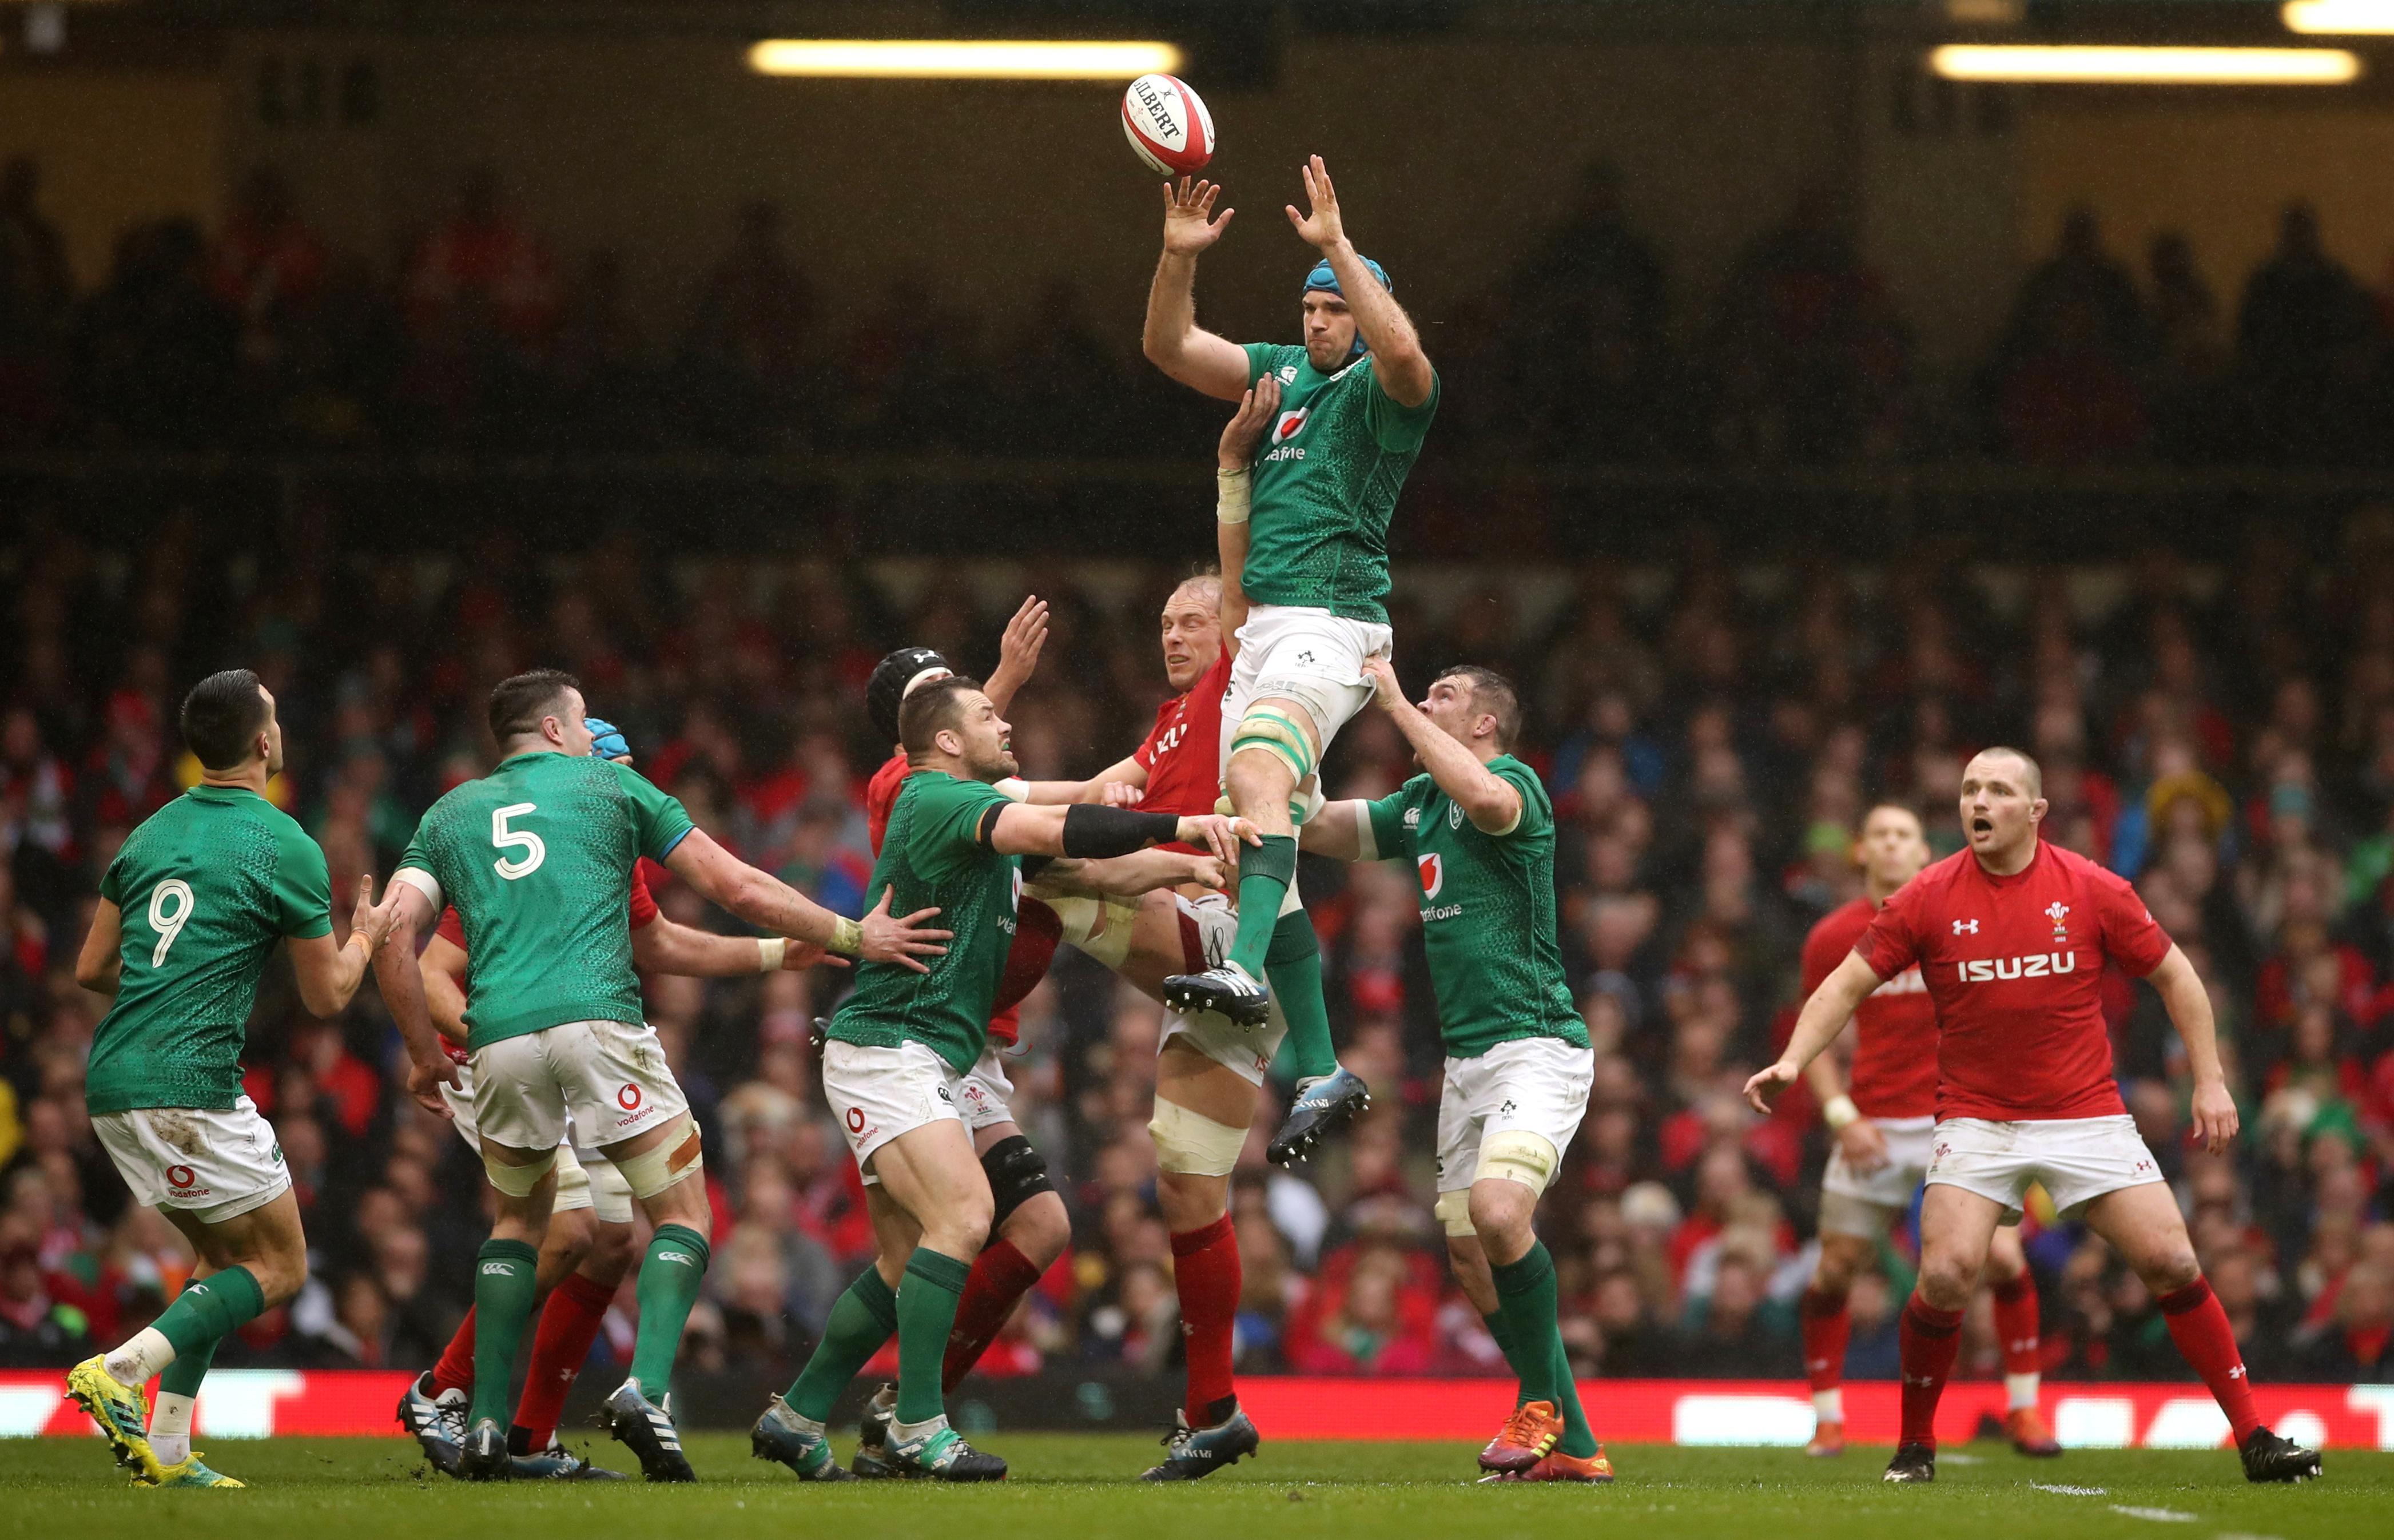 Rugby: Irish lineout comes into focus amid selection tradeoffs